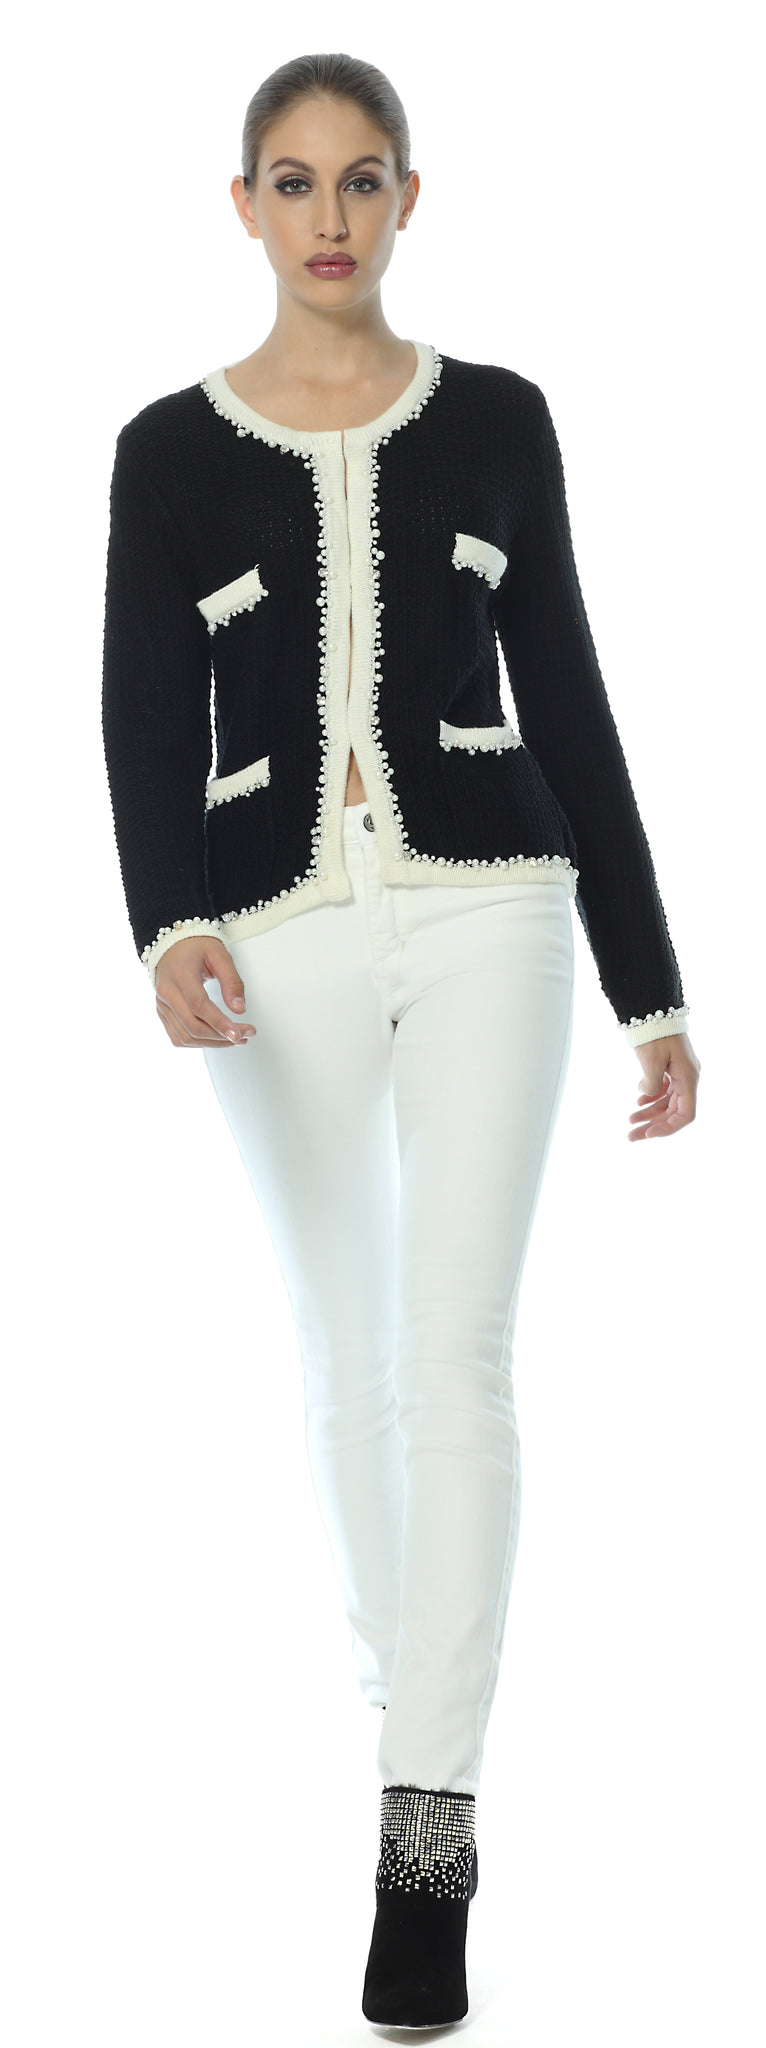 Little French knitted Jacket in black inspired by Coco Chanel paired with white jeans and black ankle boots